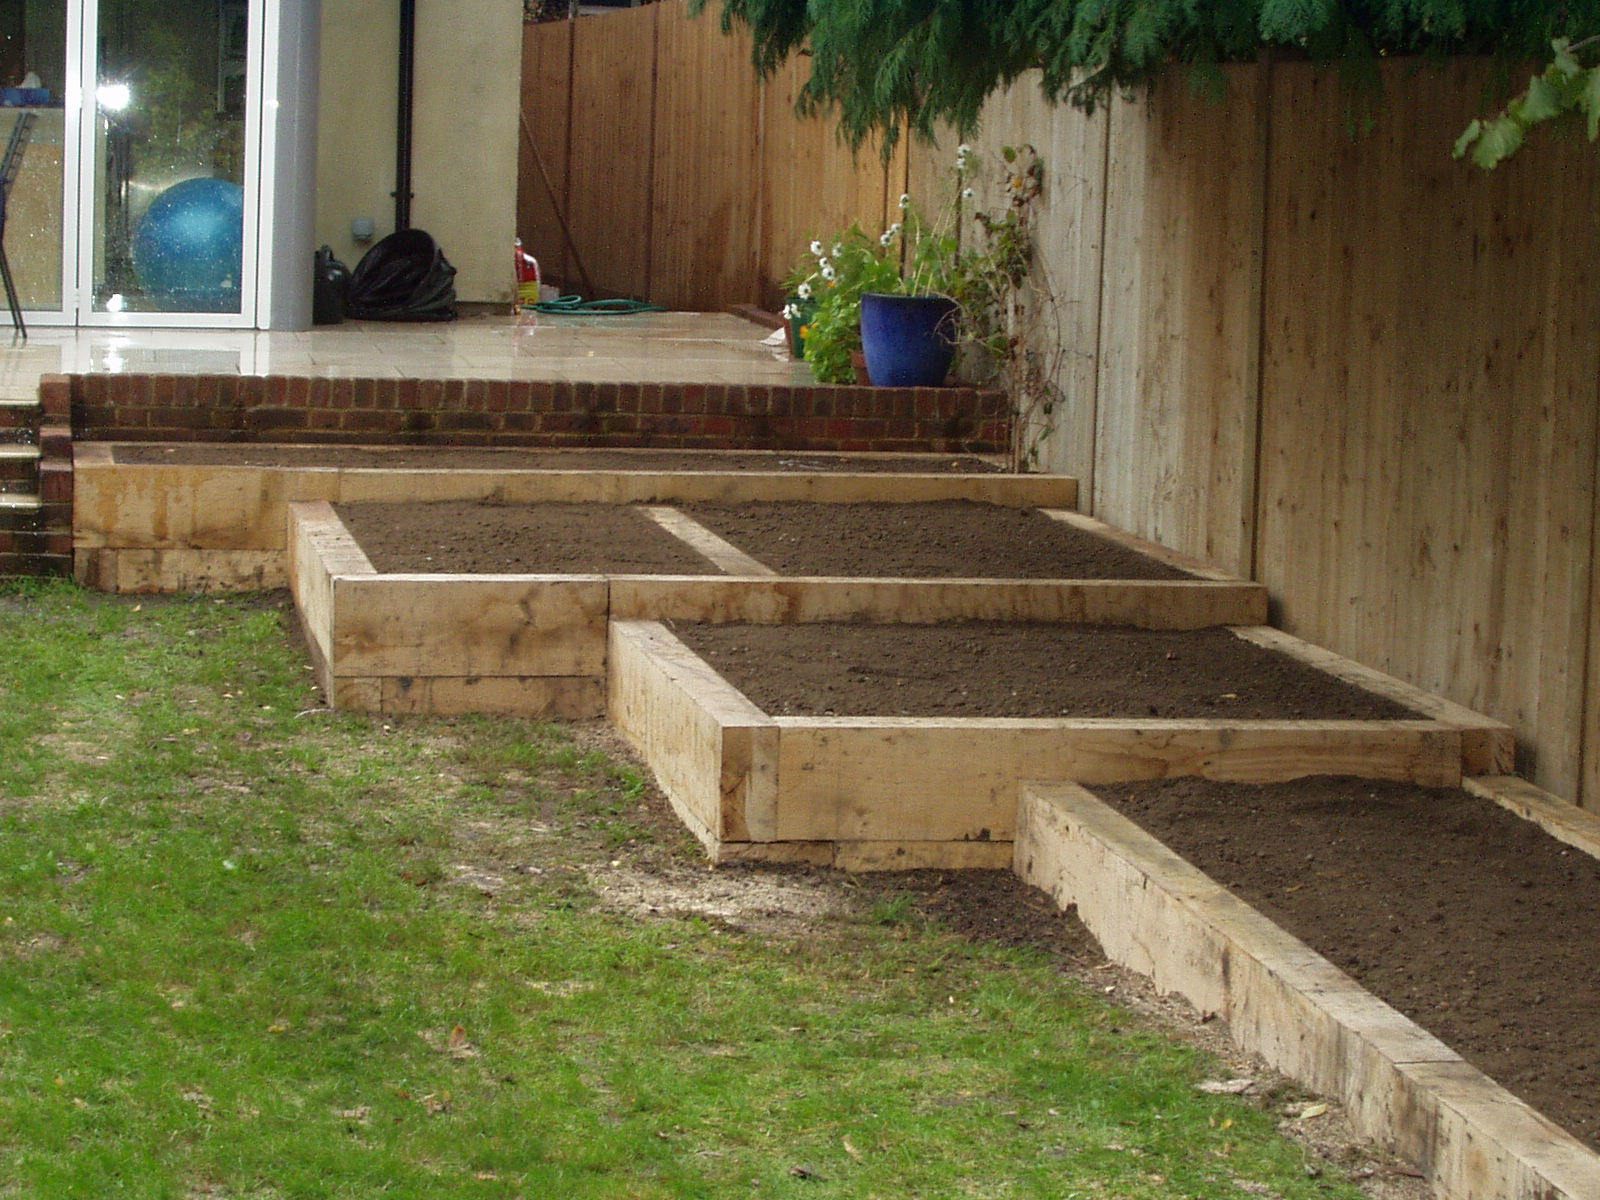 Sleepers forevergreen gardens for Garden designs with railway sleepers